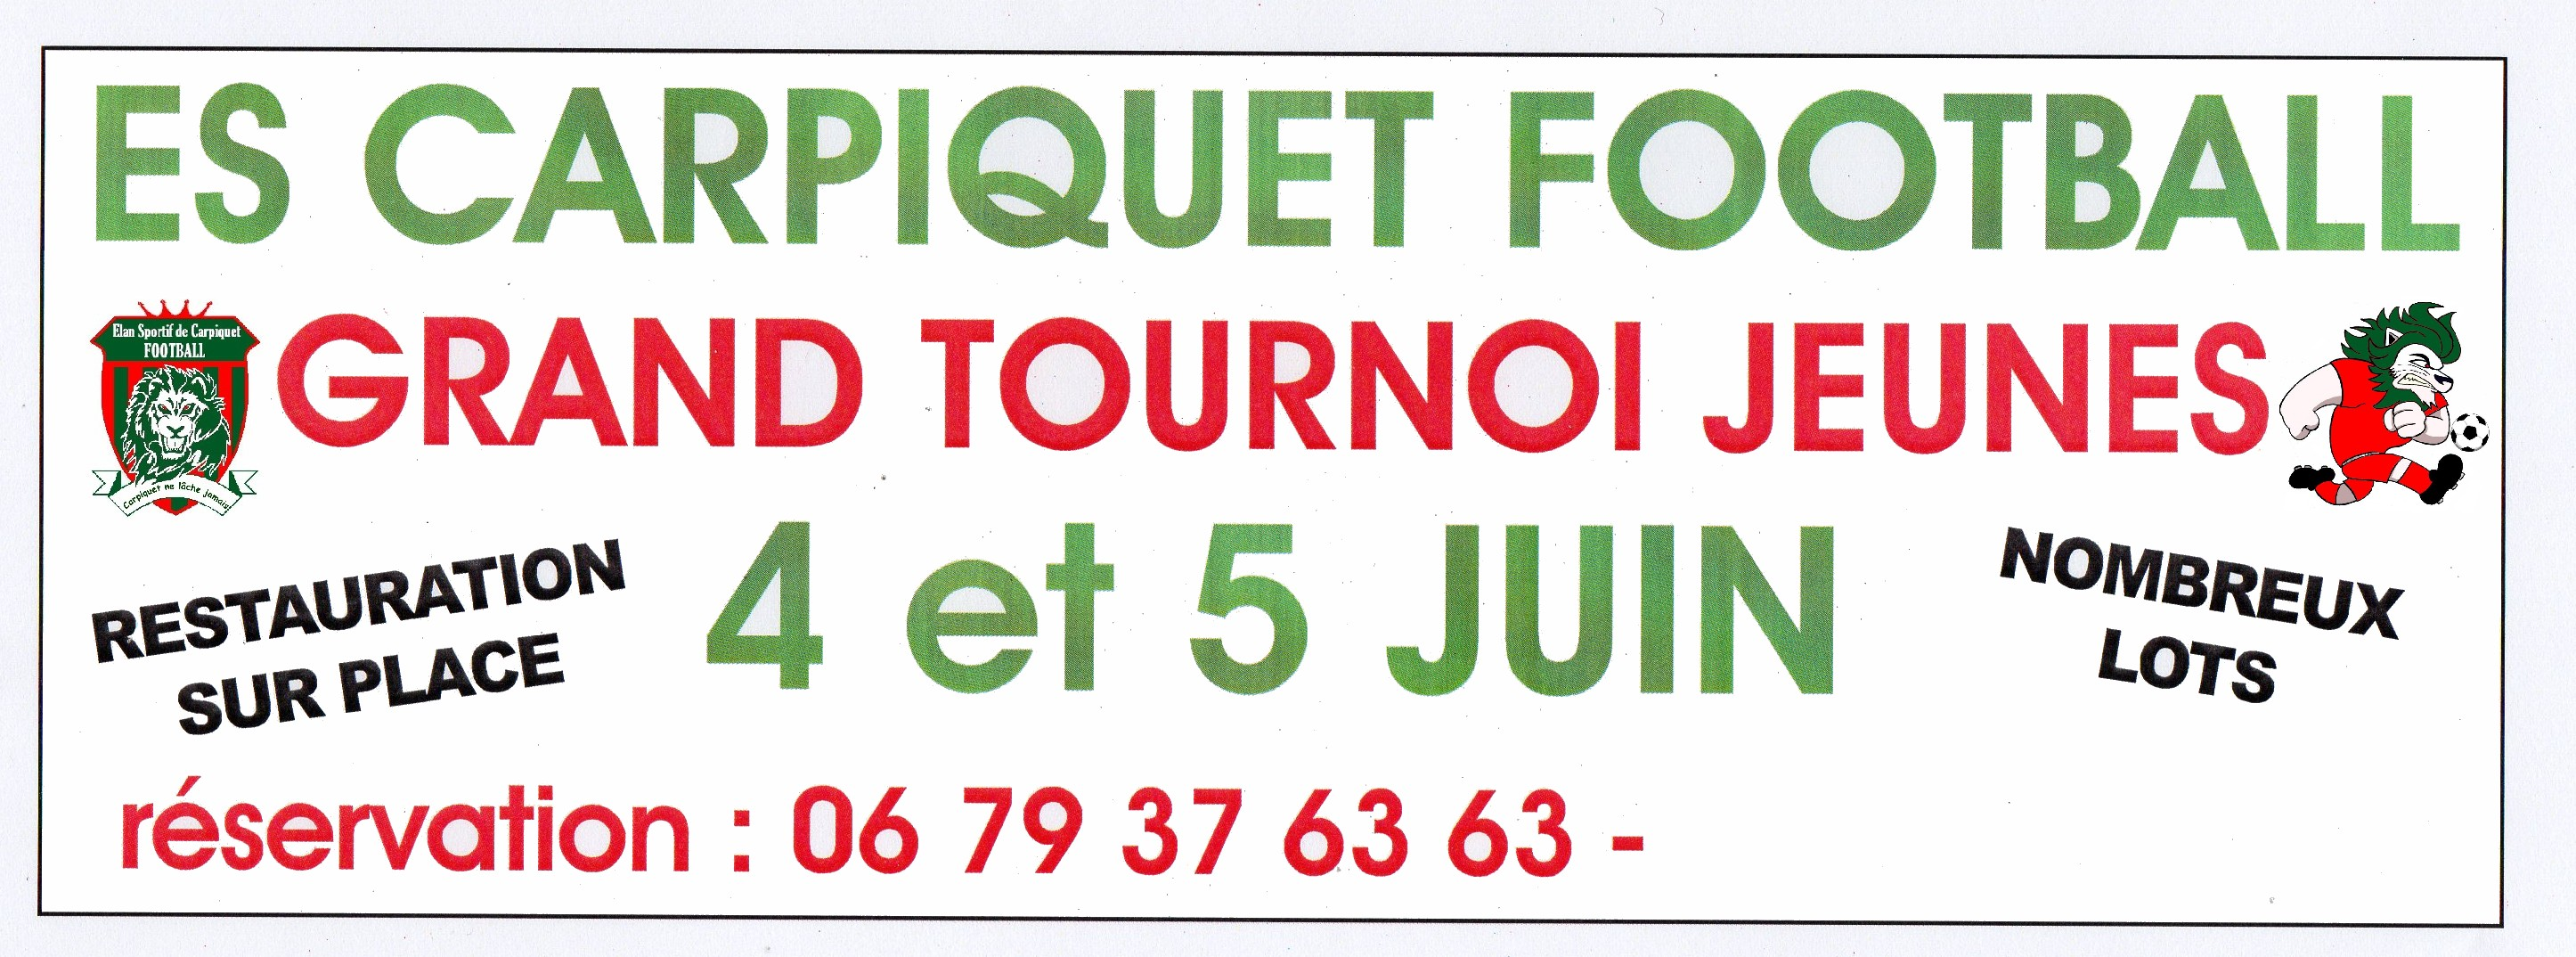 r tournoi es carpiquet